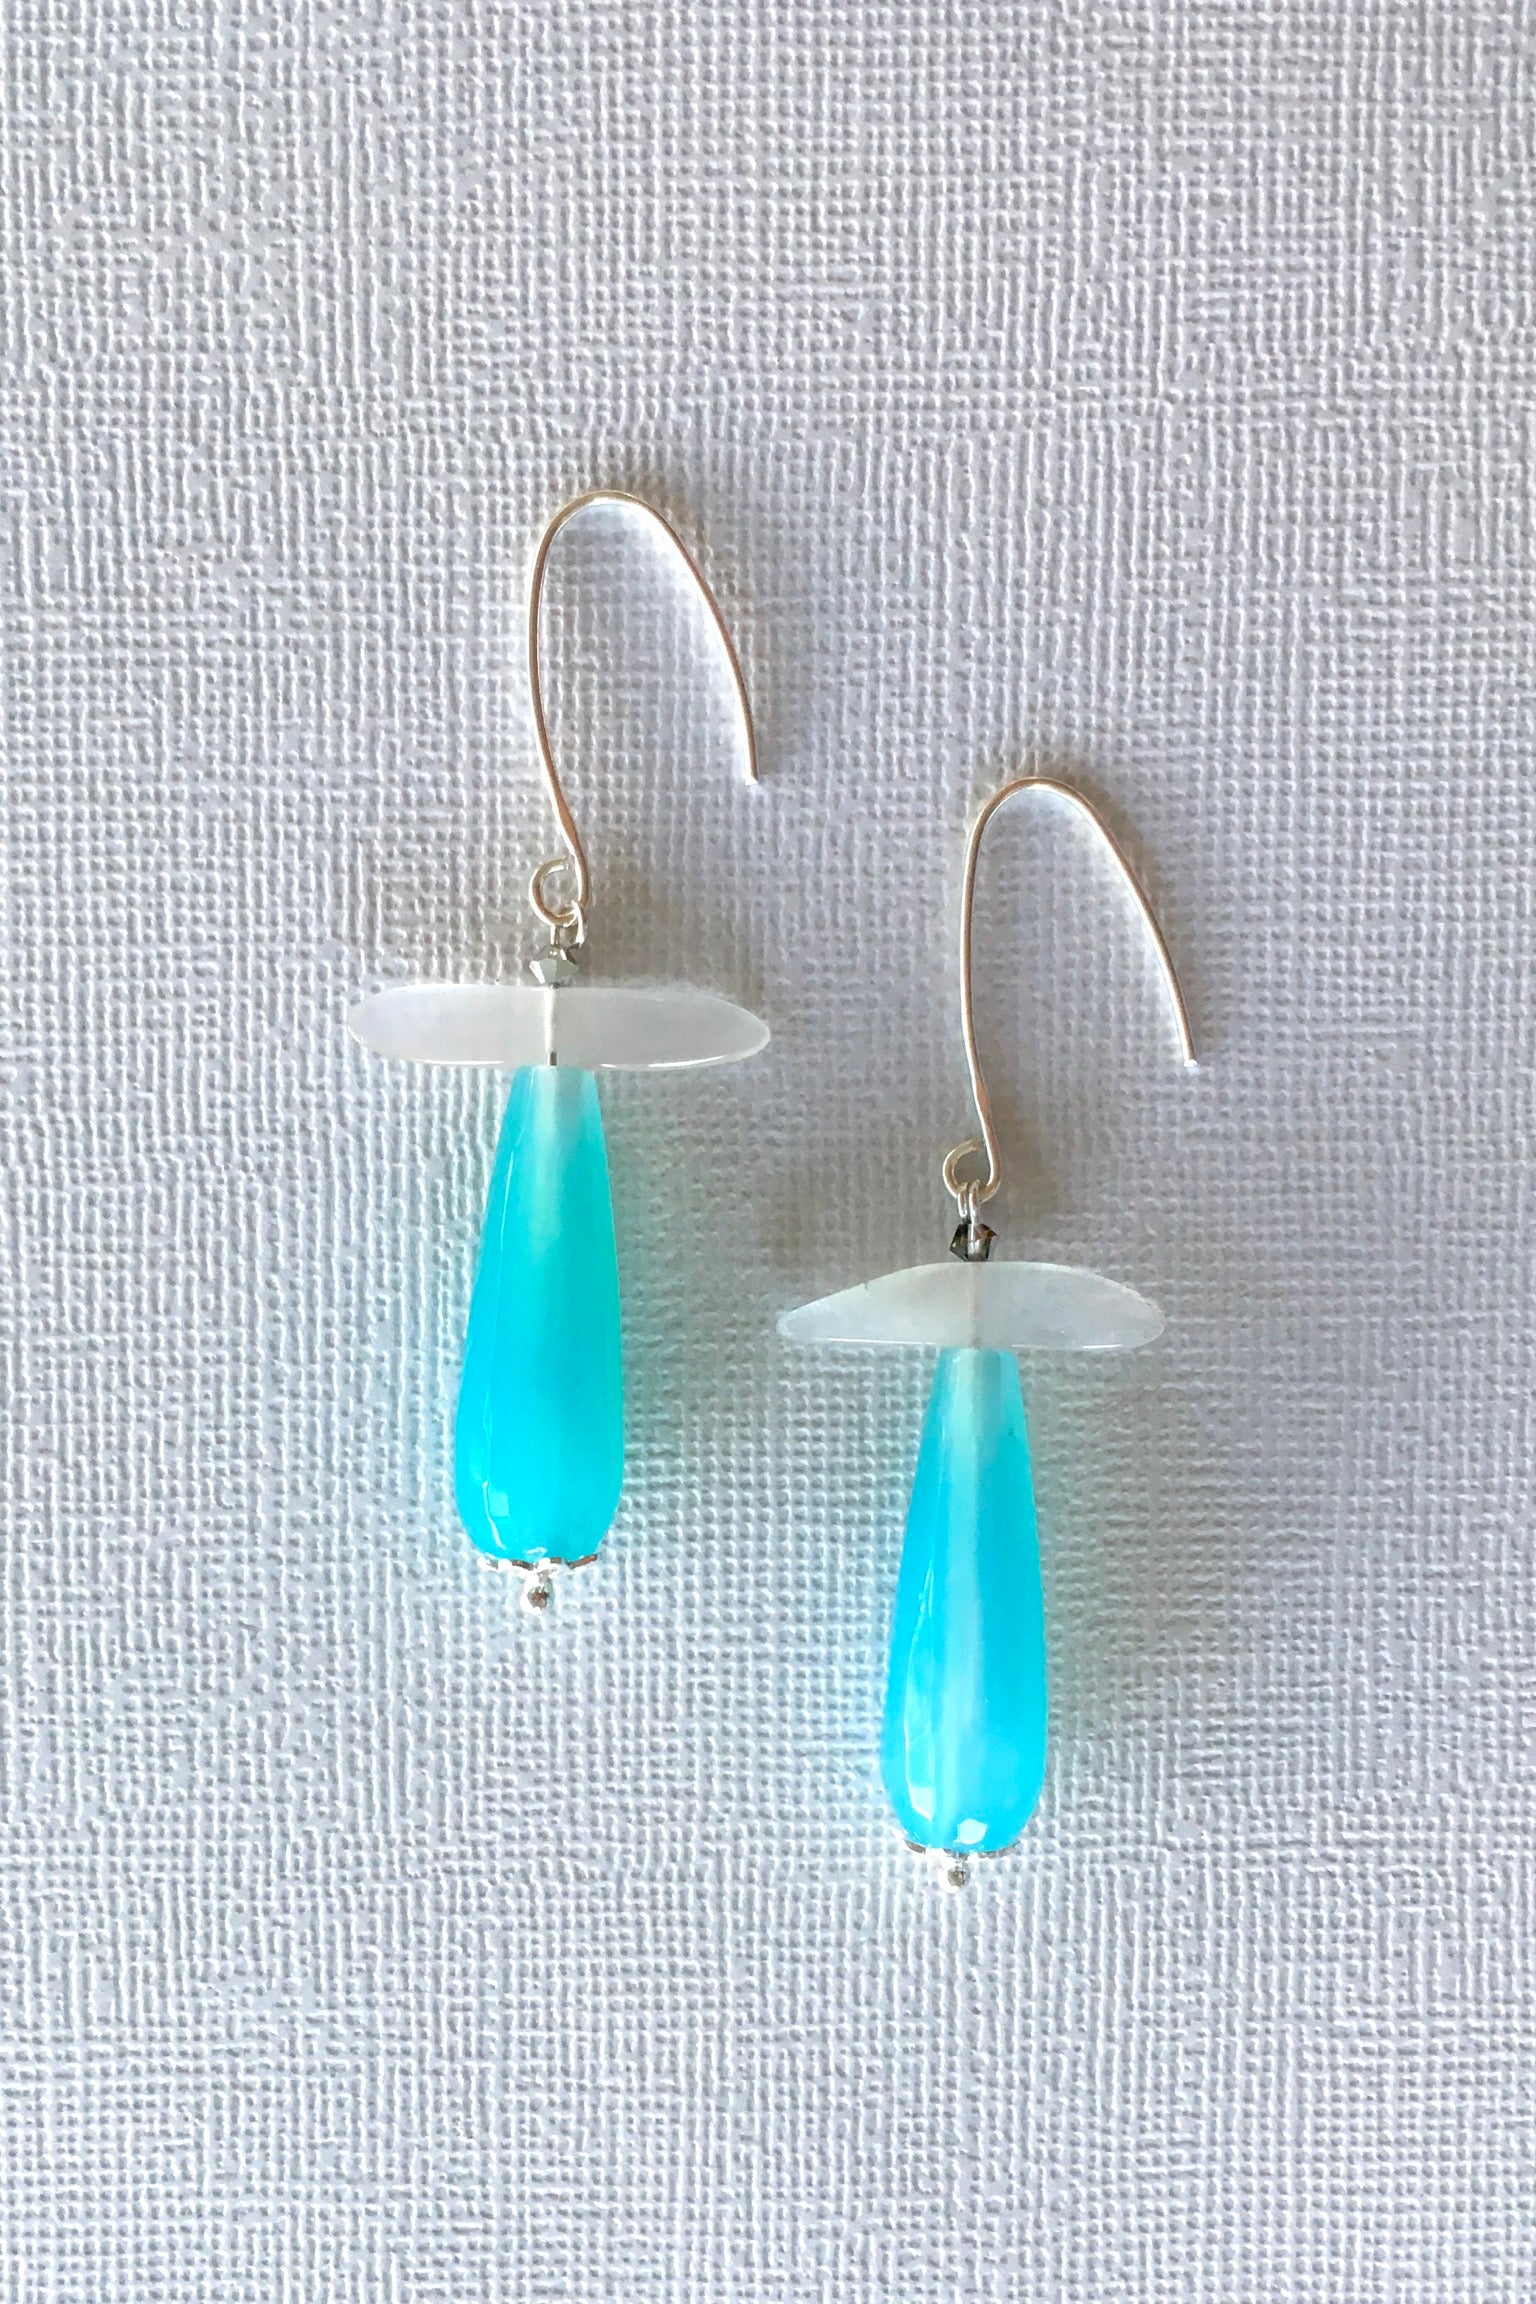 Women's jewellery. Blue moonstone crystal drop earrings, drop style  bohemian and gypsy inspired sea blue stones in a teardrop shape. 925 silver hook. Great for everyday, night out, event, occasion. Beautiful gift and accessory. Lightweight. Designed in Brisbane Australia.